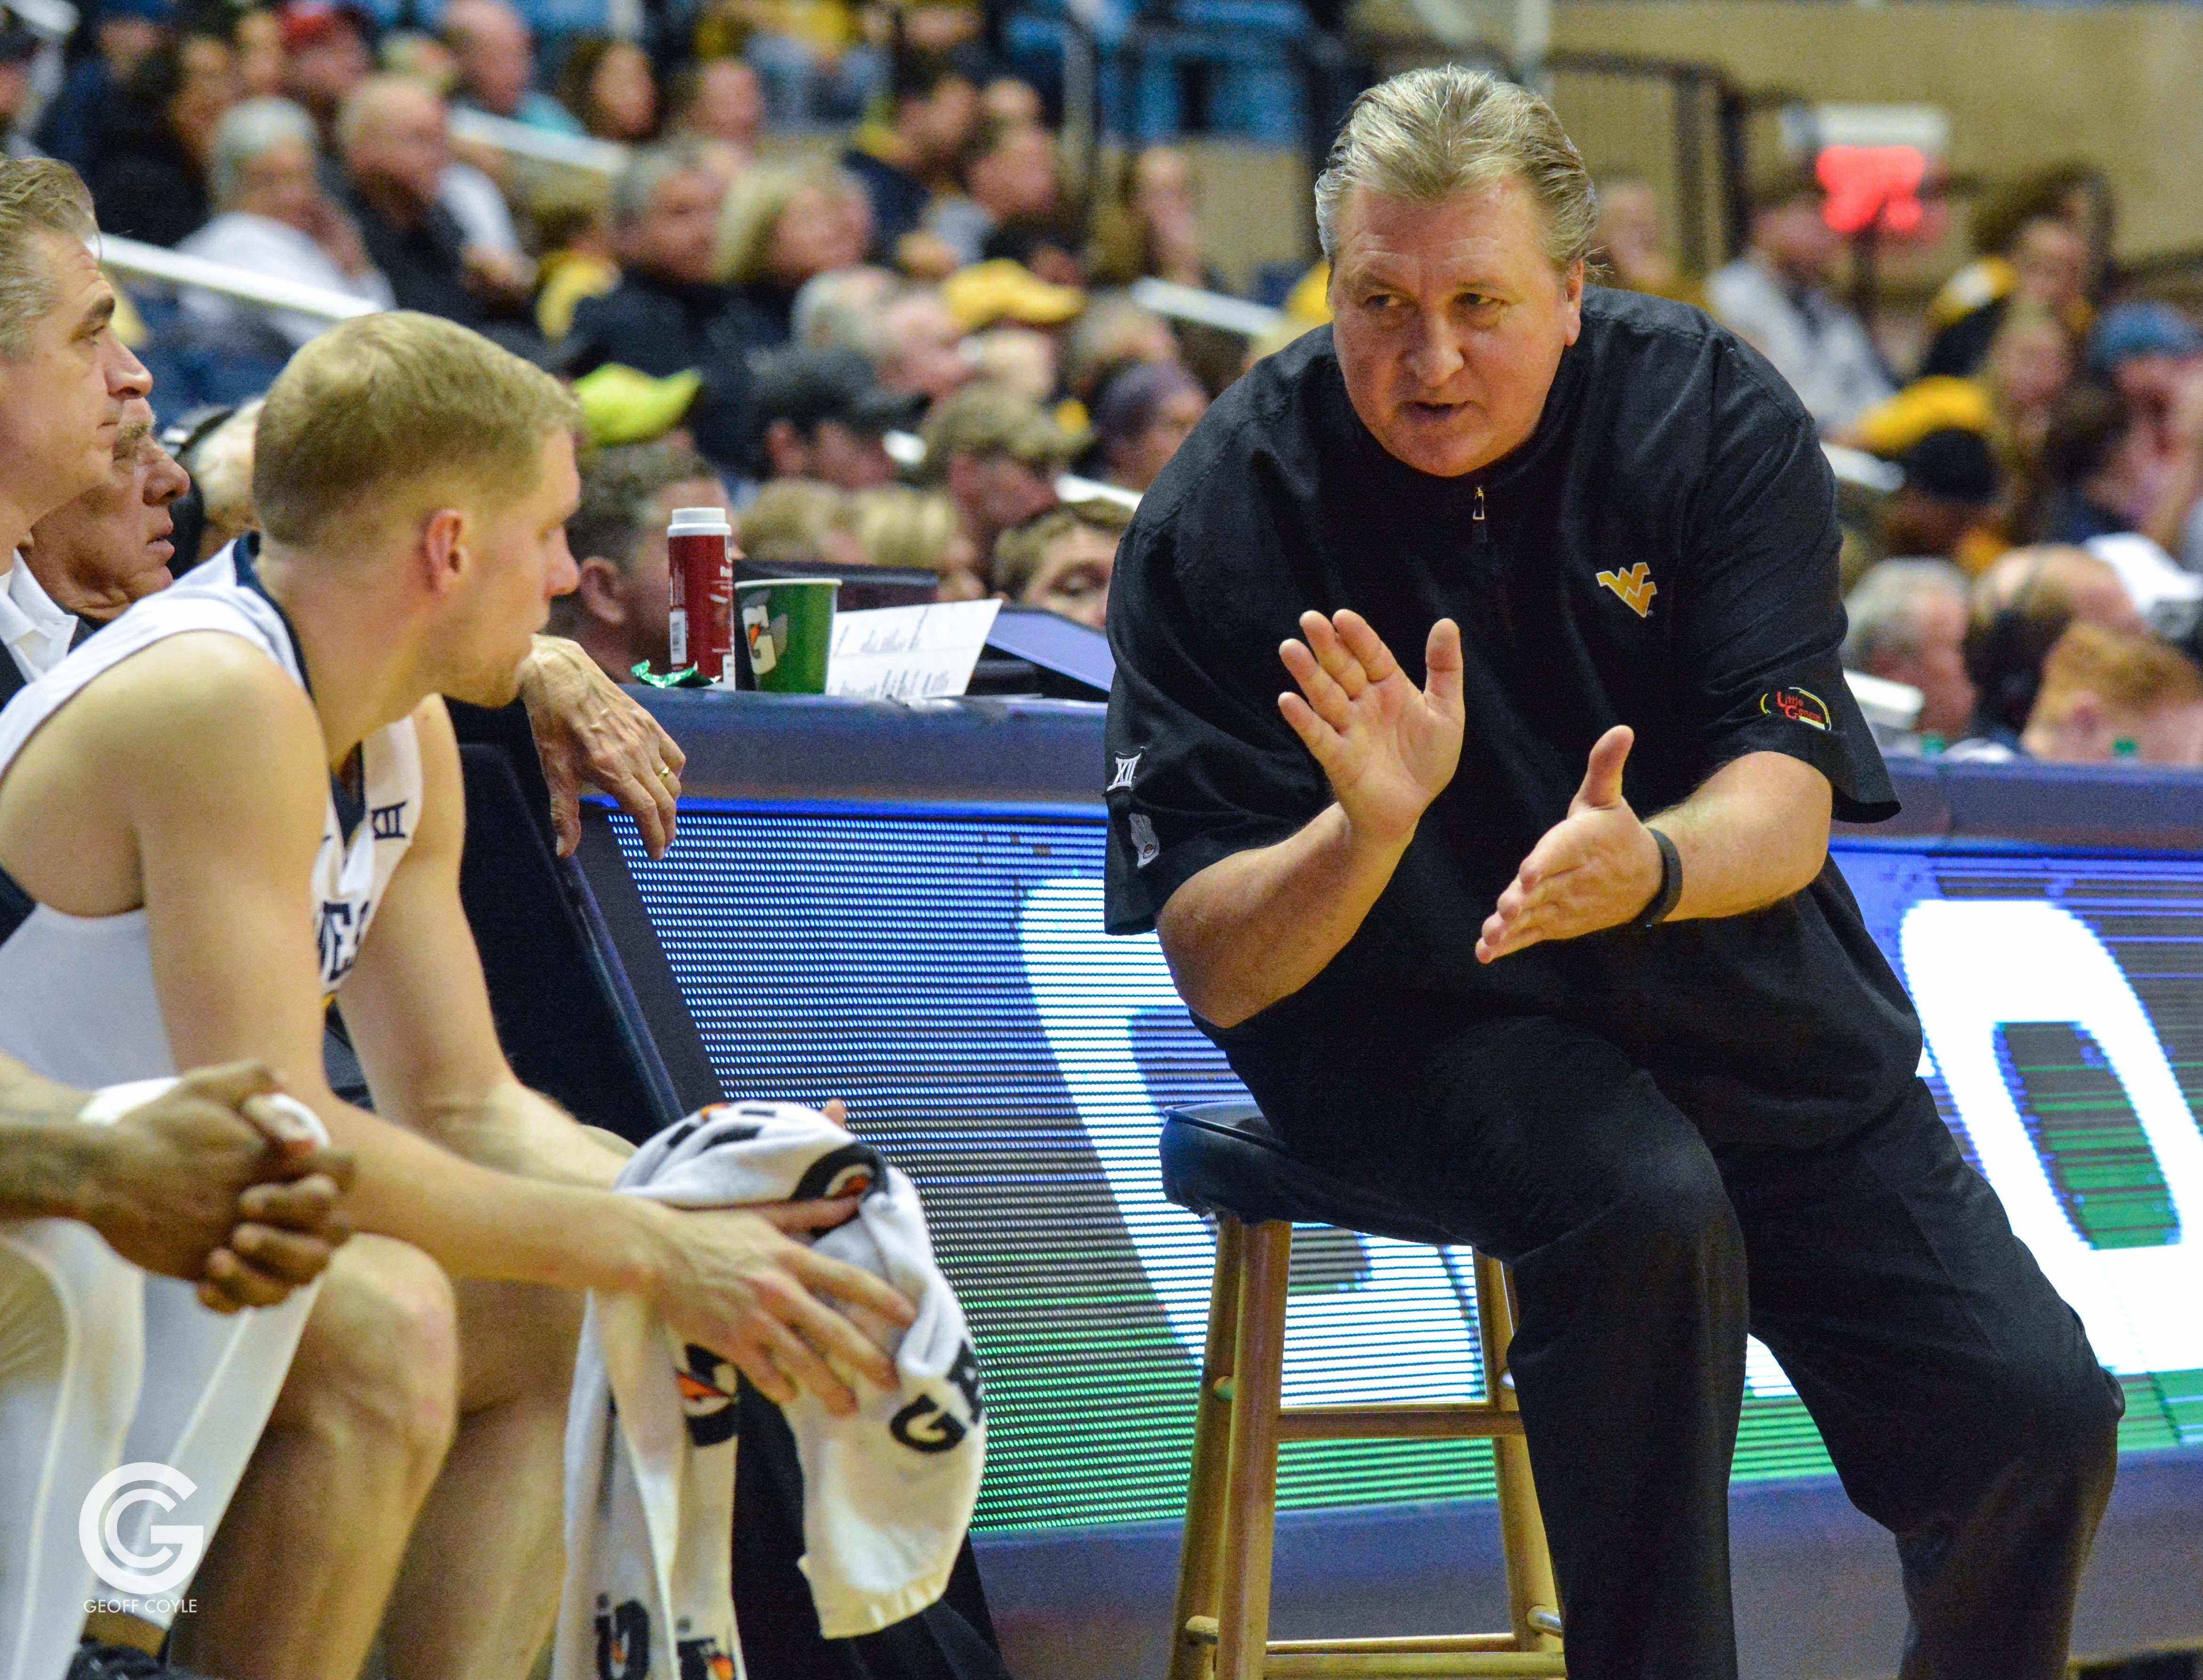 WVU coach Bob Huggins tries to motivate his bench during the second half of a win over Radford. (PHOTO: Geoff Coyle)